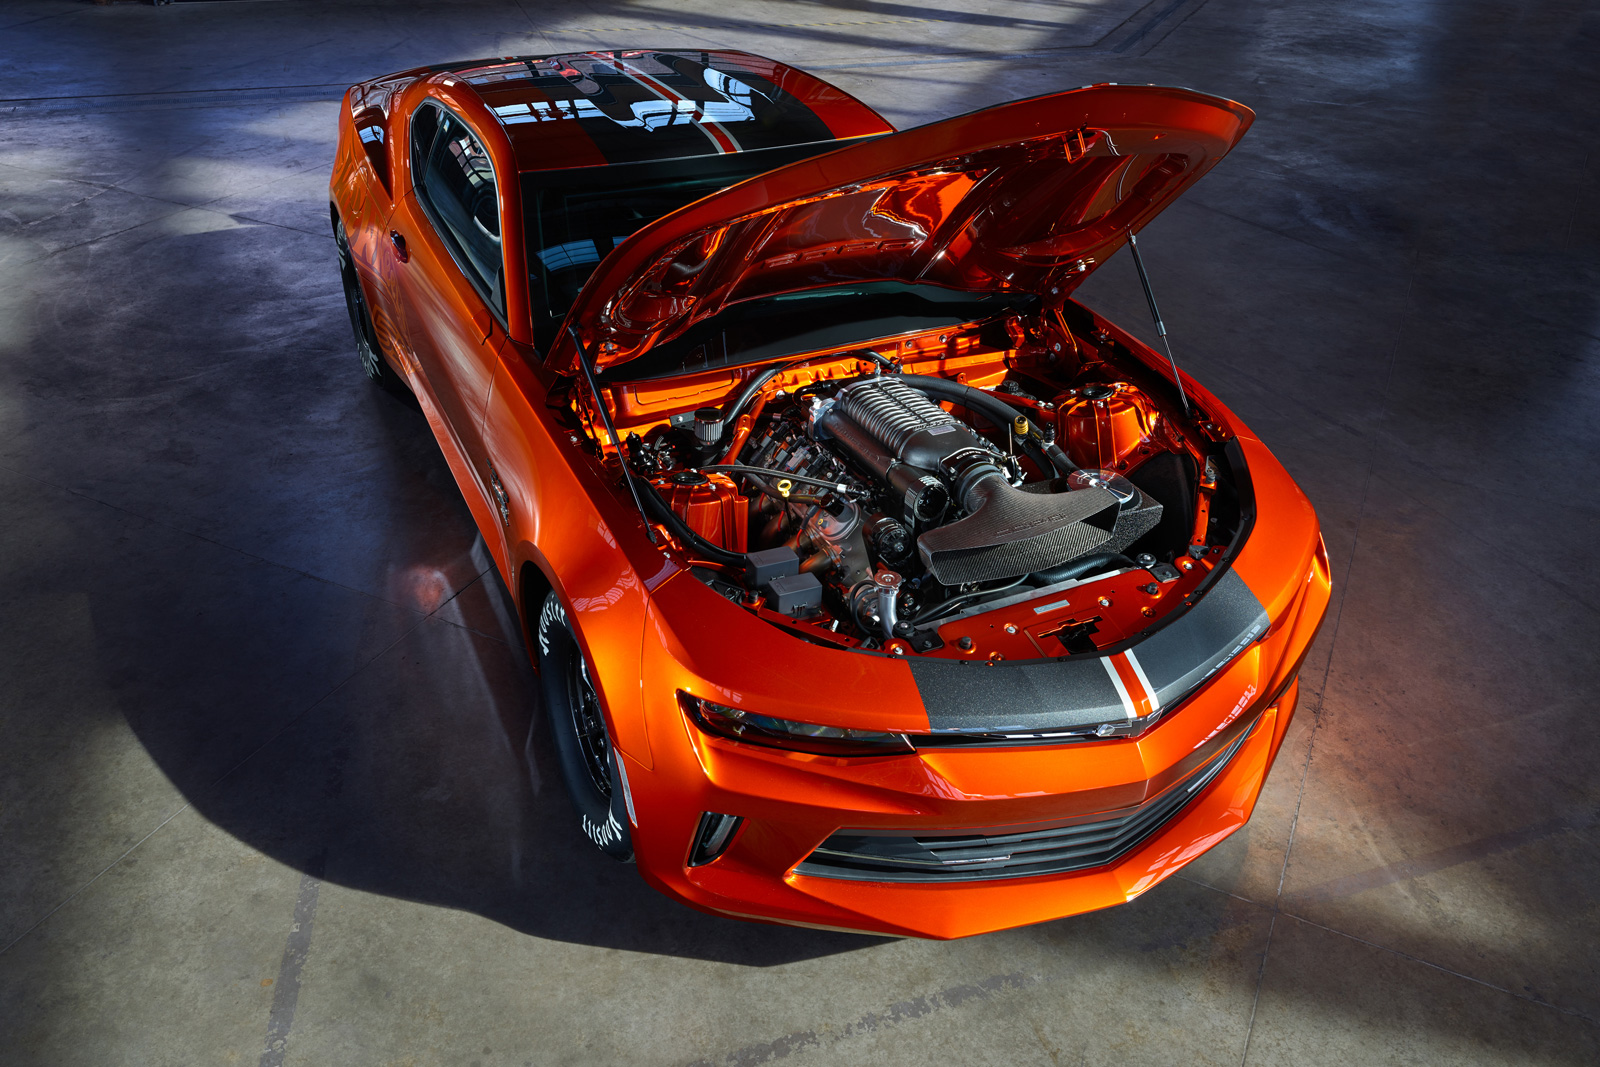 All Types pictures of the new camaro : 2018 Chevrolet COPO Camaro Gets All-New 302 Racing Engine ...